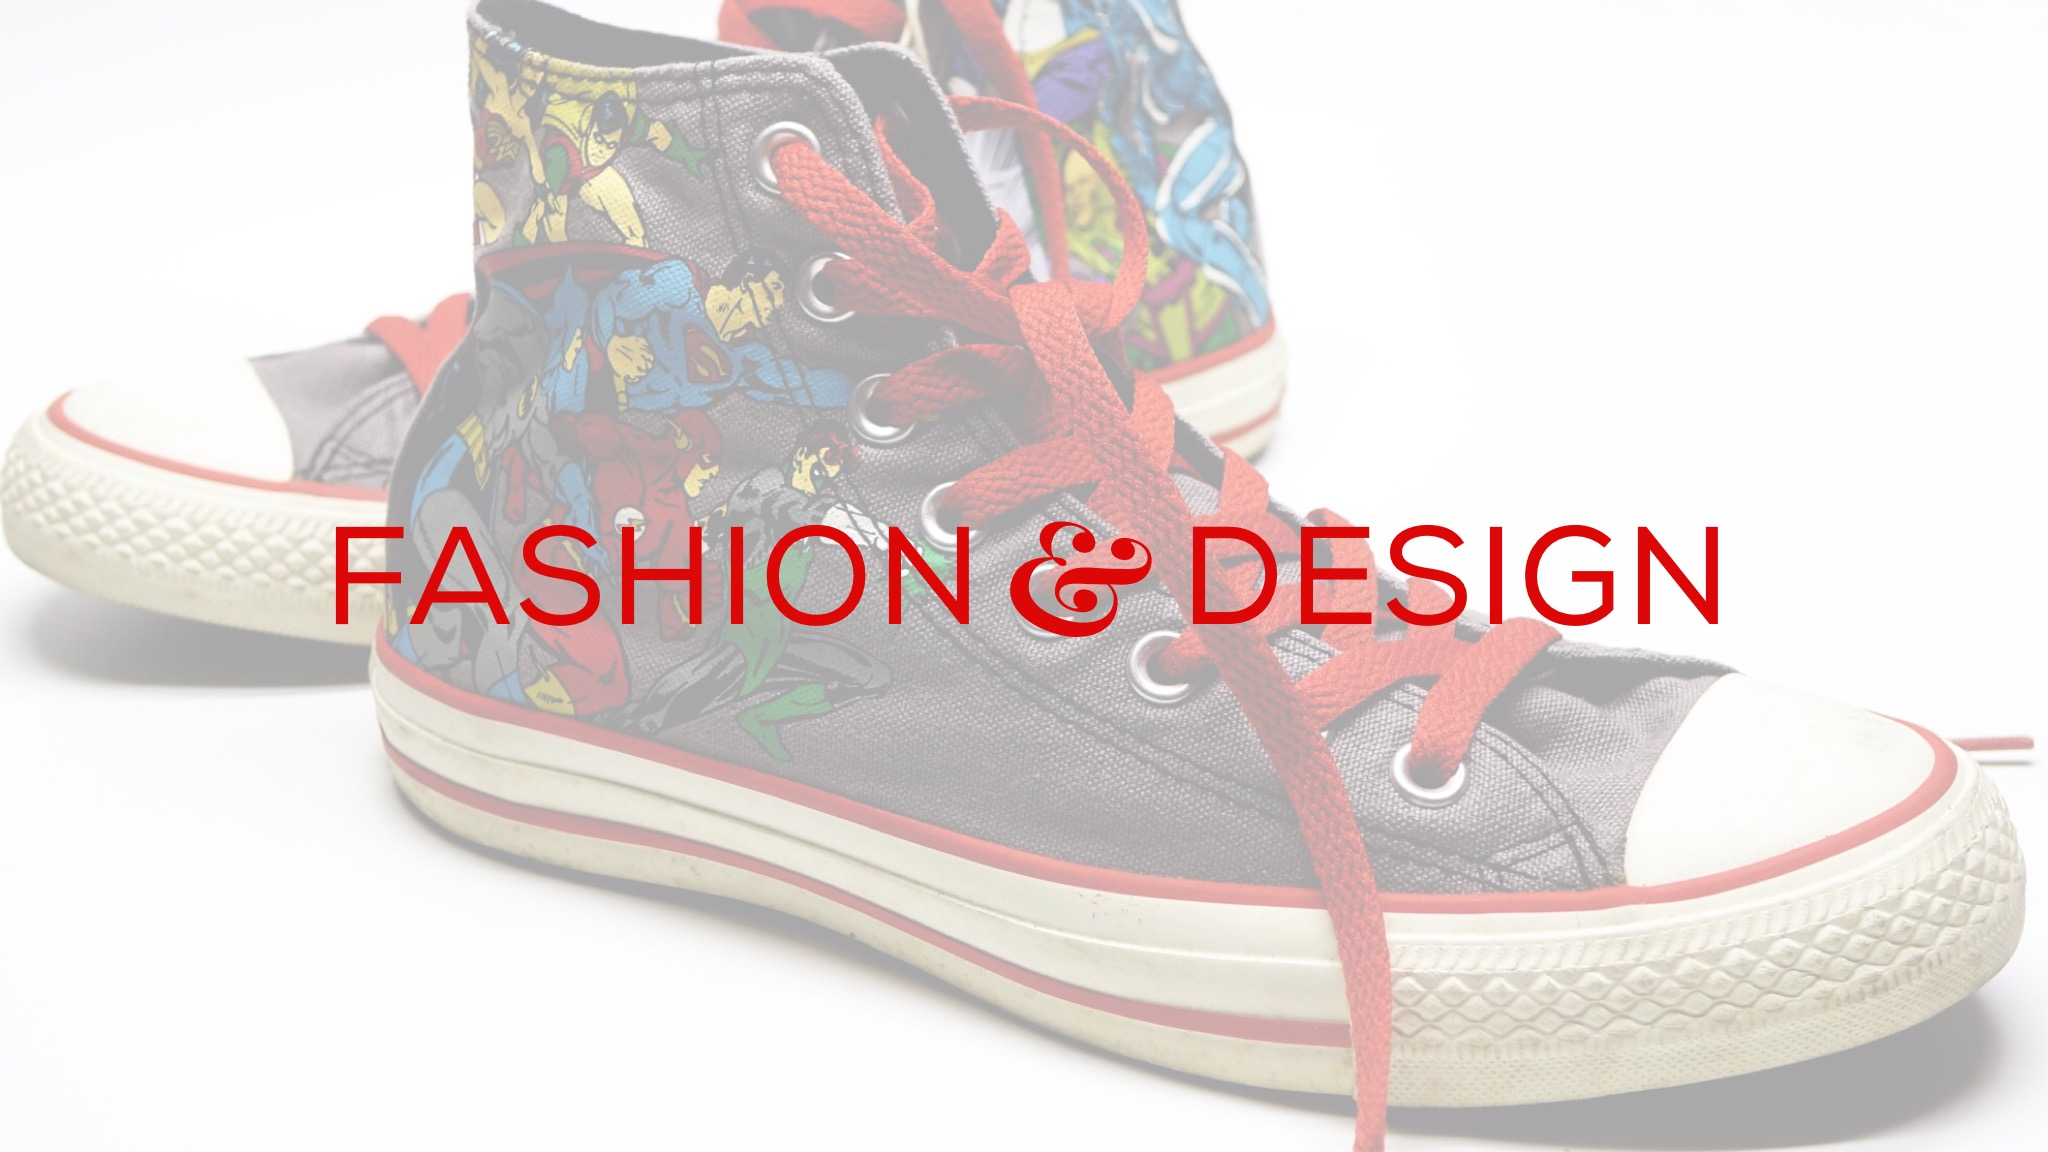 Squarespace for Fashion and Design